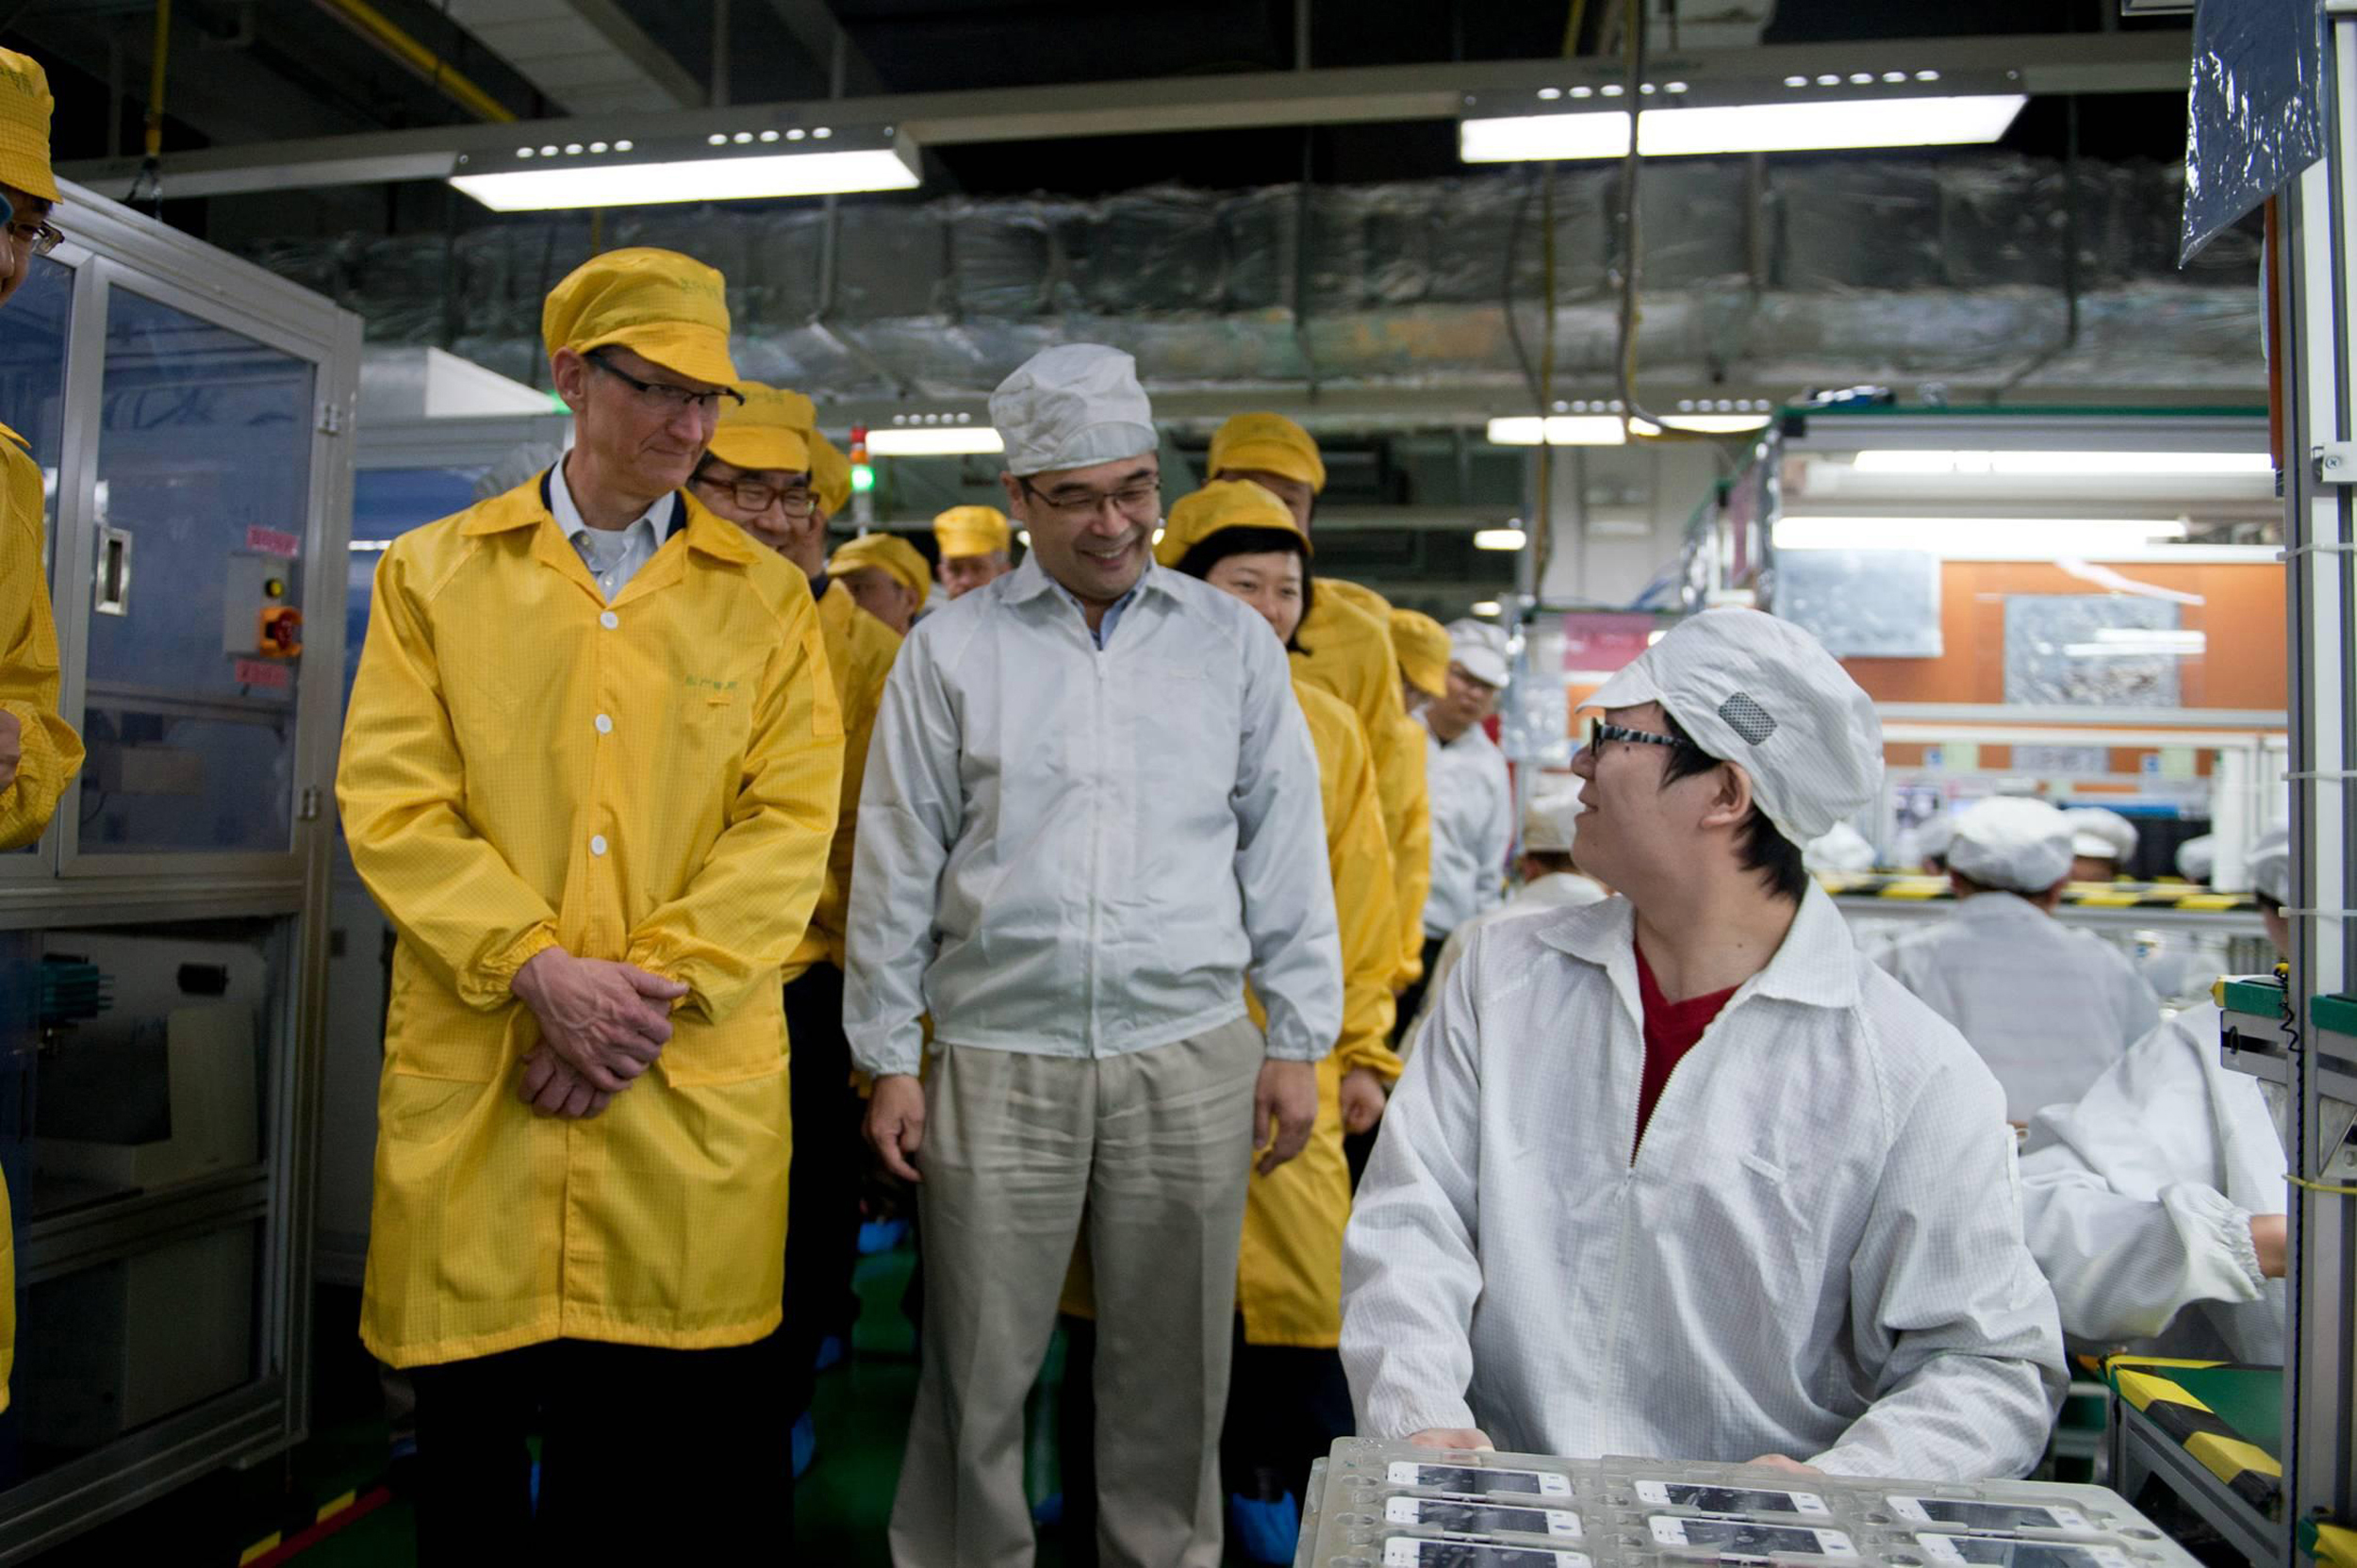 Apple supplier Foxconn says it will build big Wisconsin factory